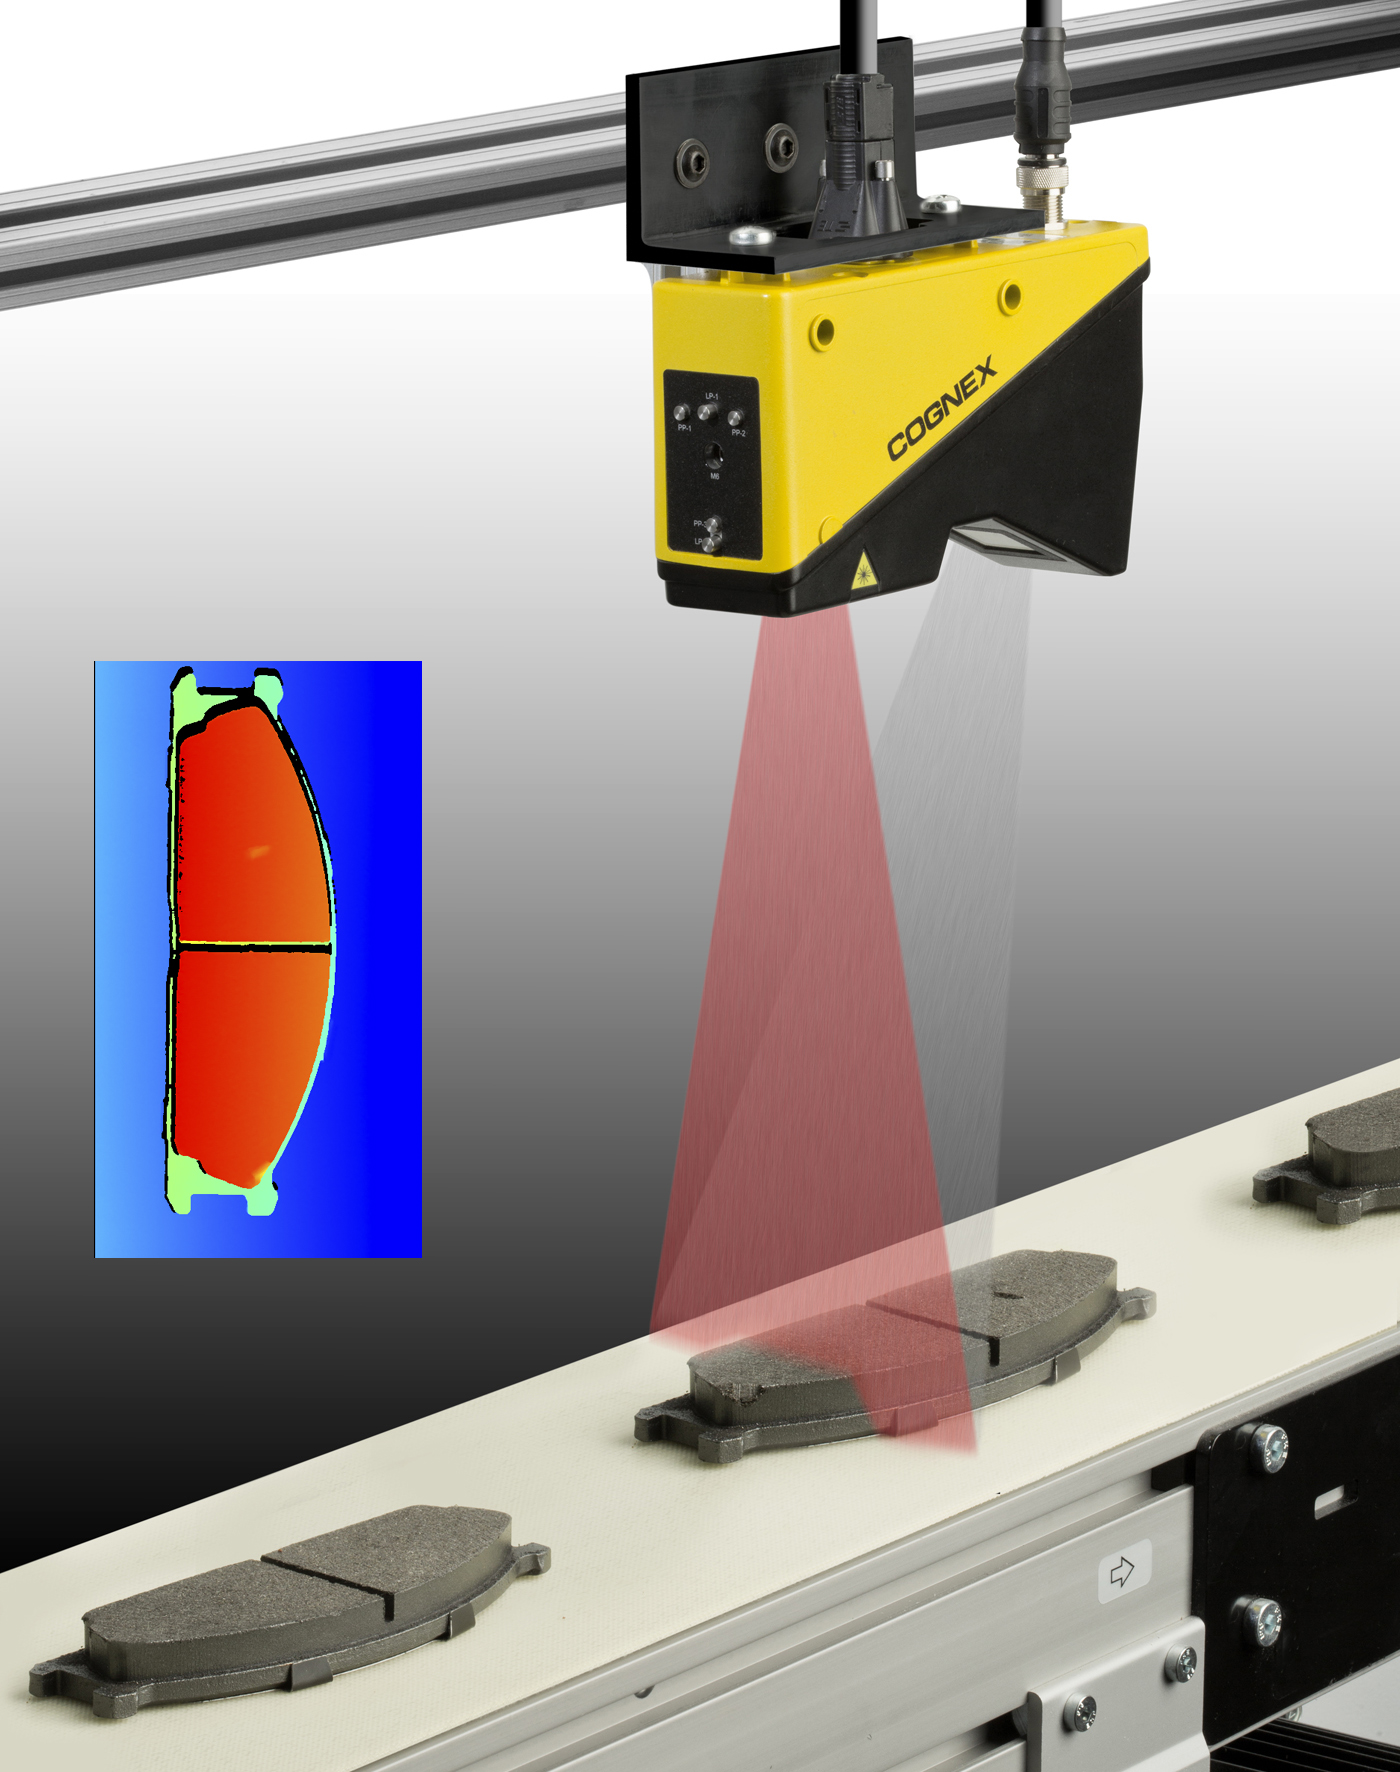 DS1000 laser profiler scanning moving brake pads for 3D dimension data